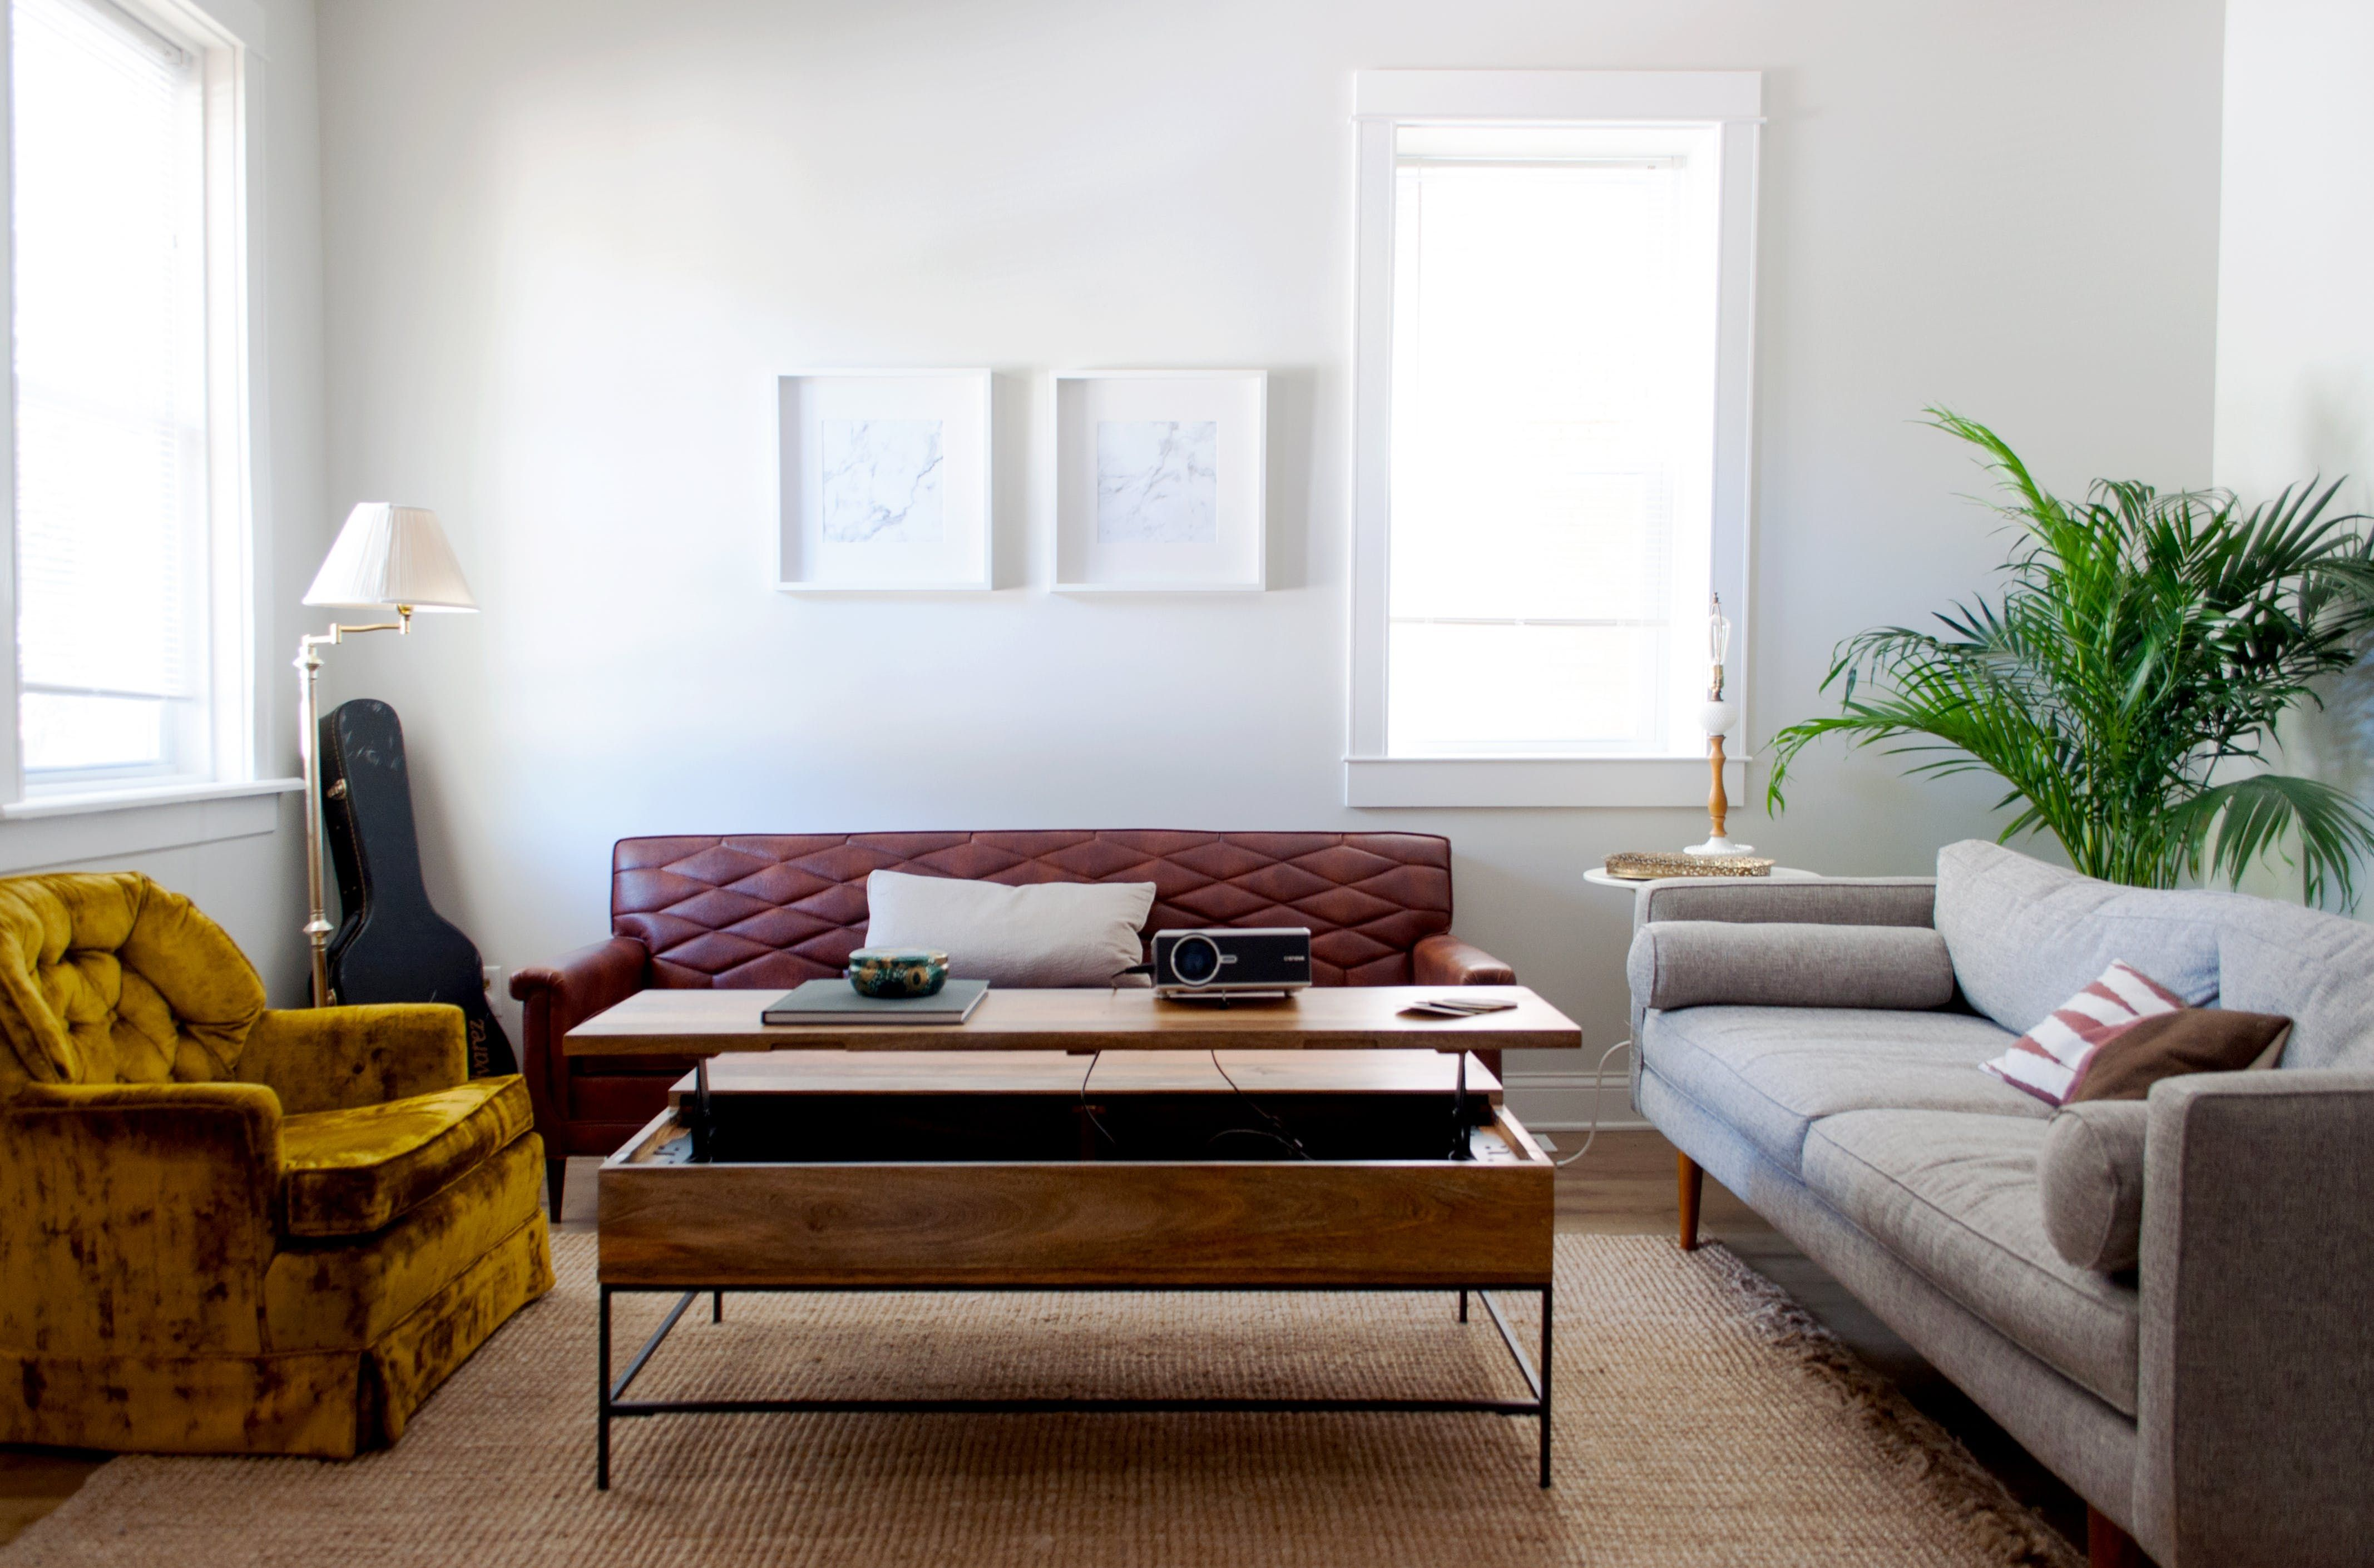 Coffee table in the living room: functionality and aesthetics